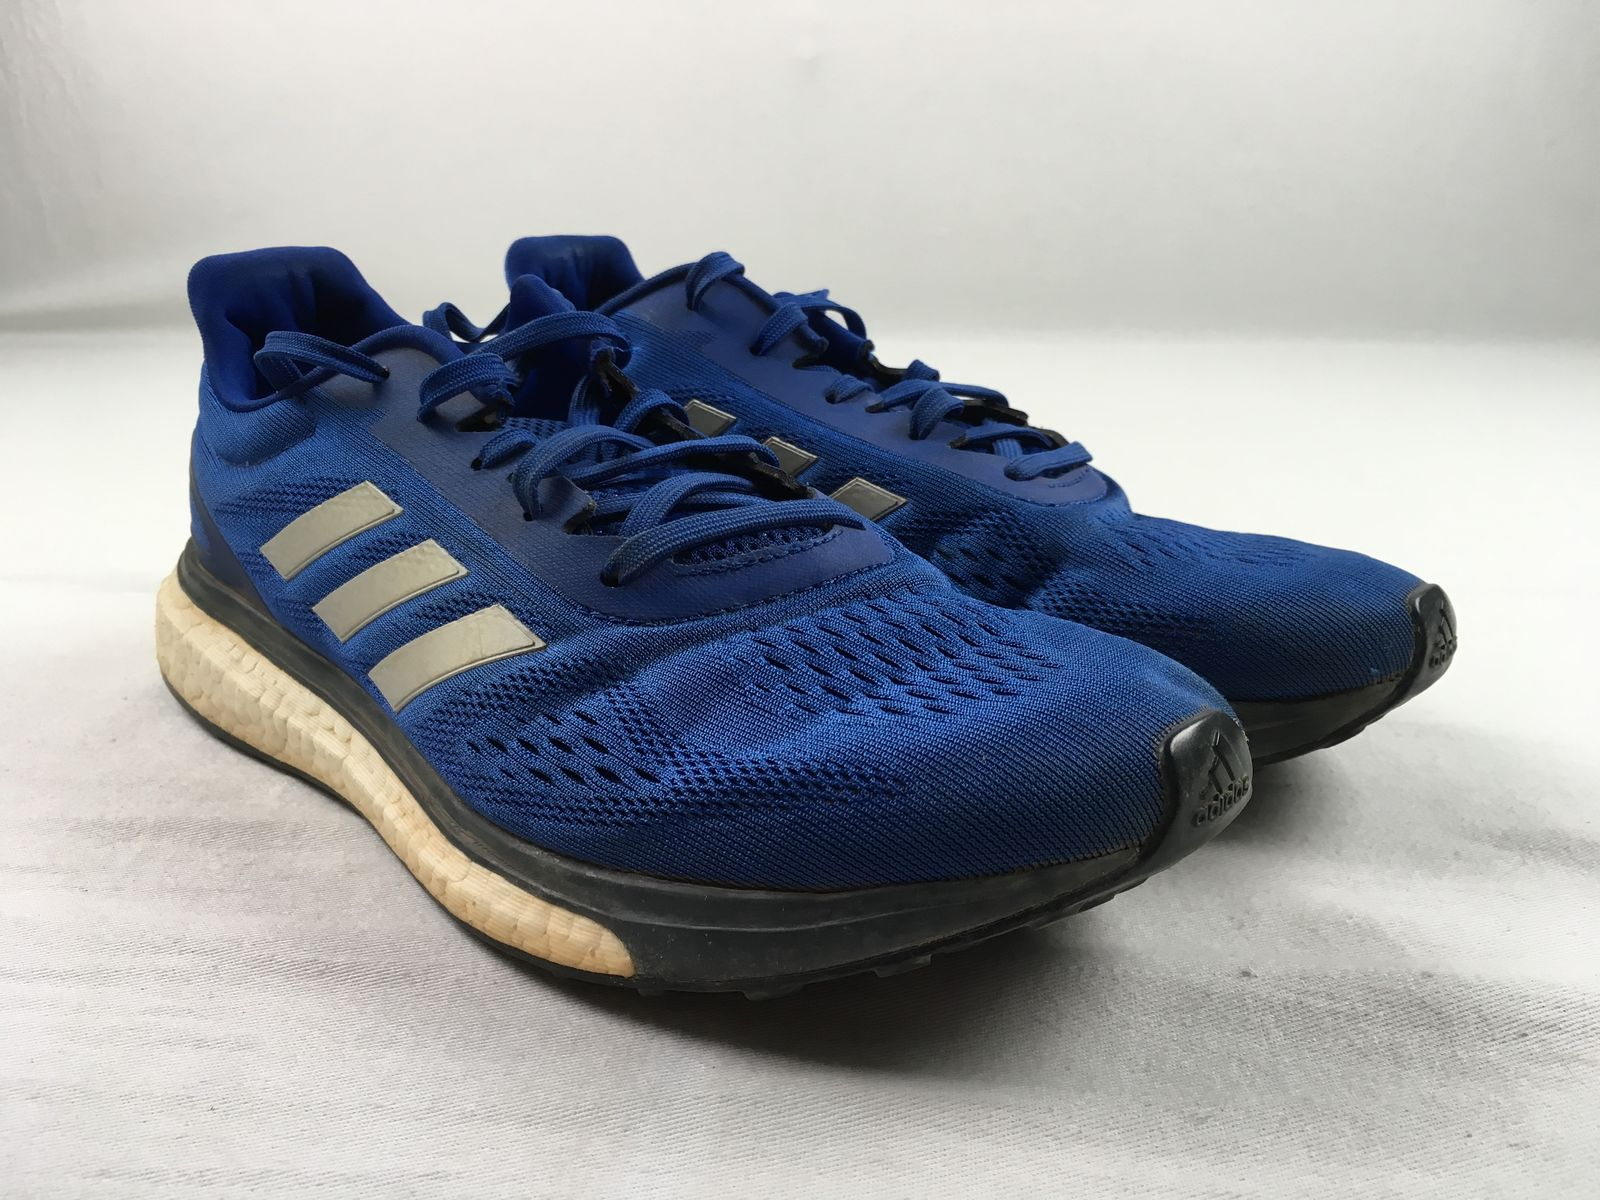 103683d2439 Details about adidas Boost Endless Energy - Blue Running